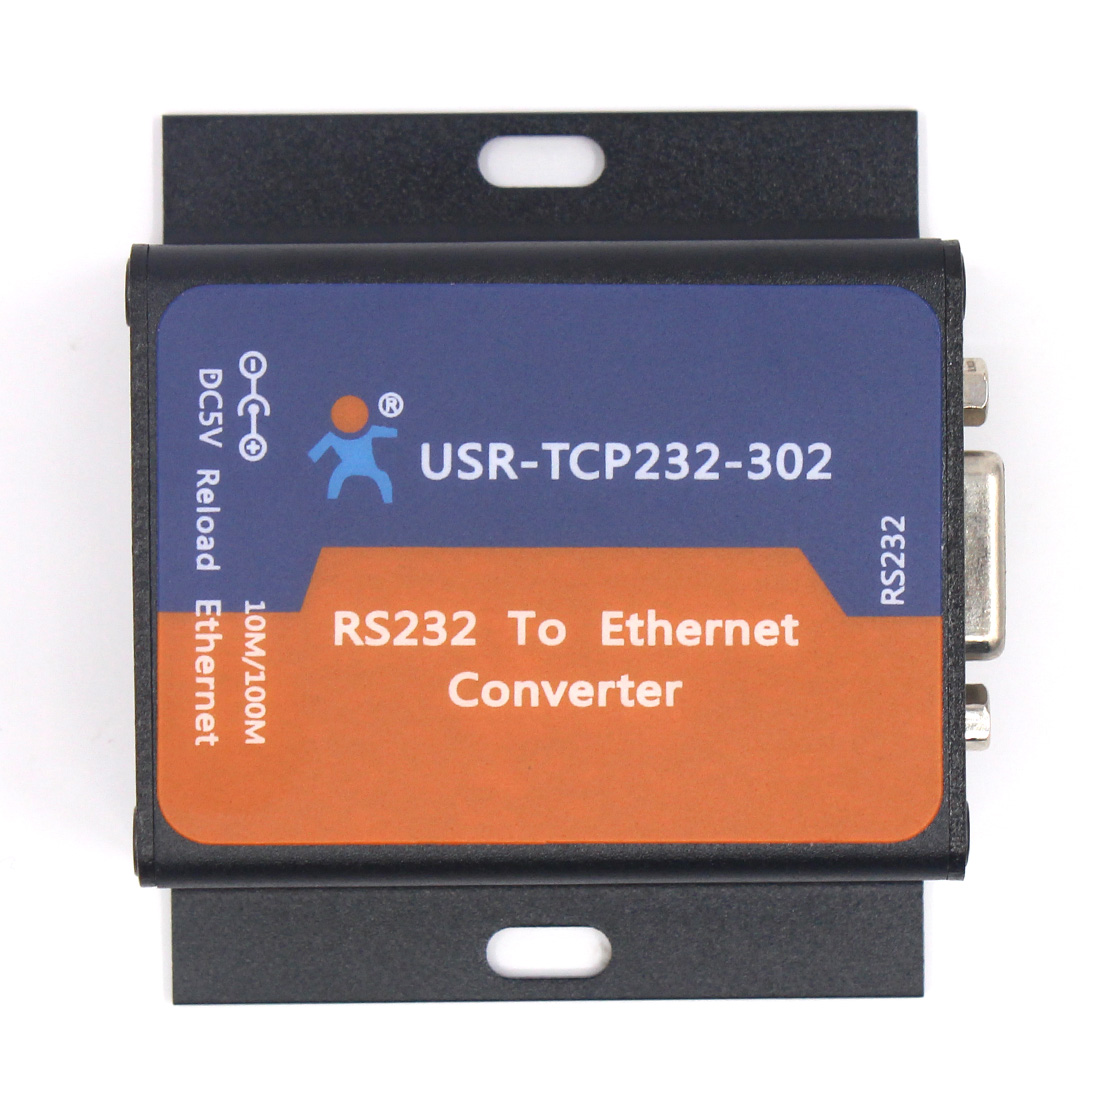 Q18041 USR-TCP232-302 Tiny Size Serial RS232 to Ethernet TCP IP Server Module Ethernet Converter Support DHCP/DNS цены онлайн